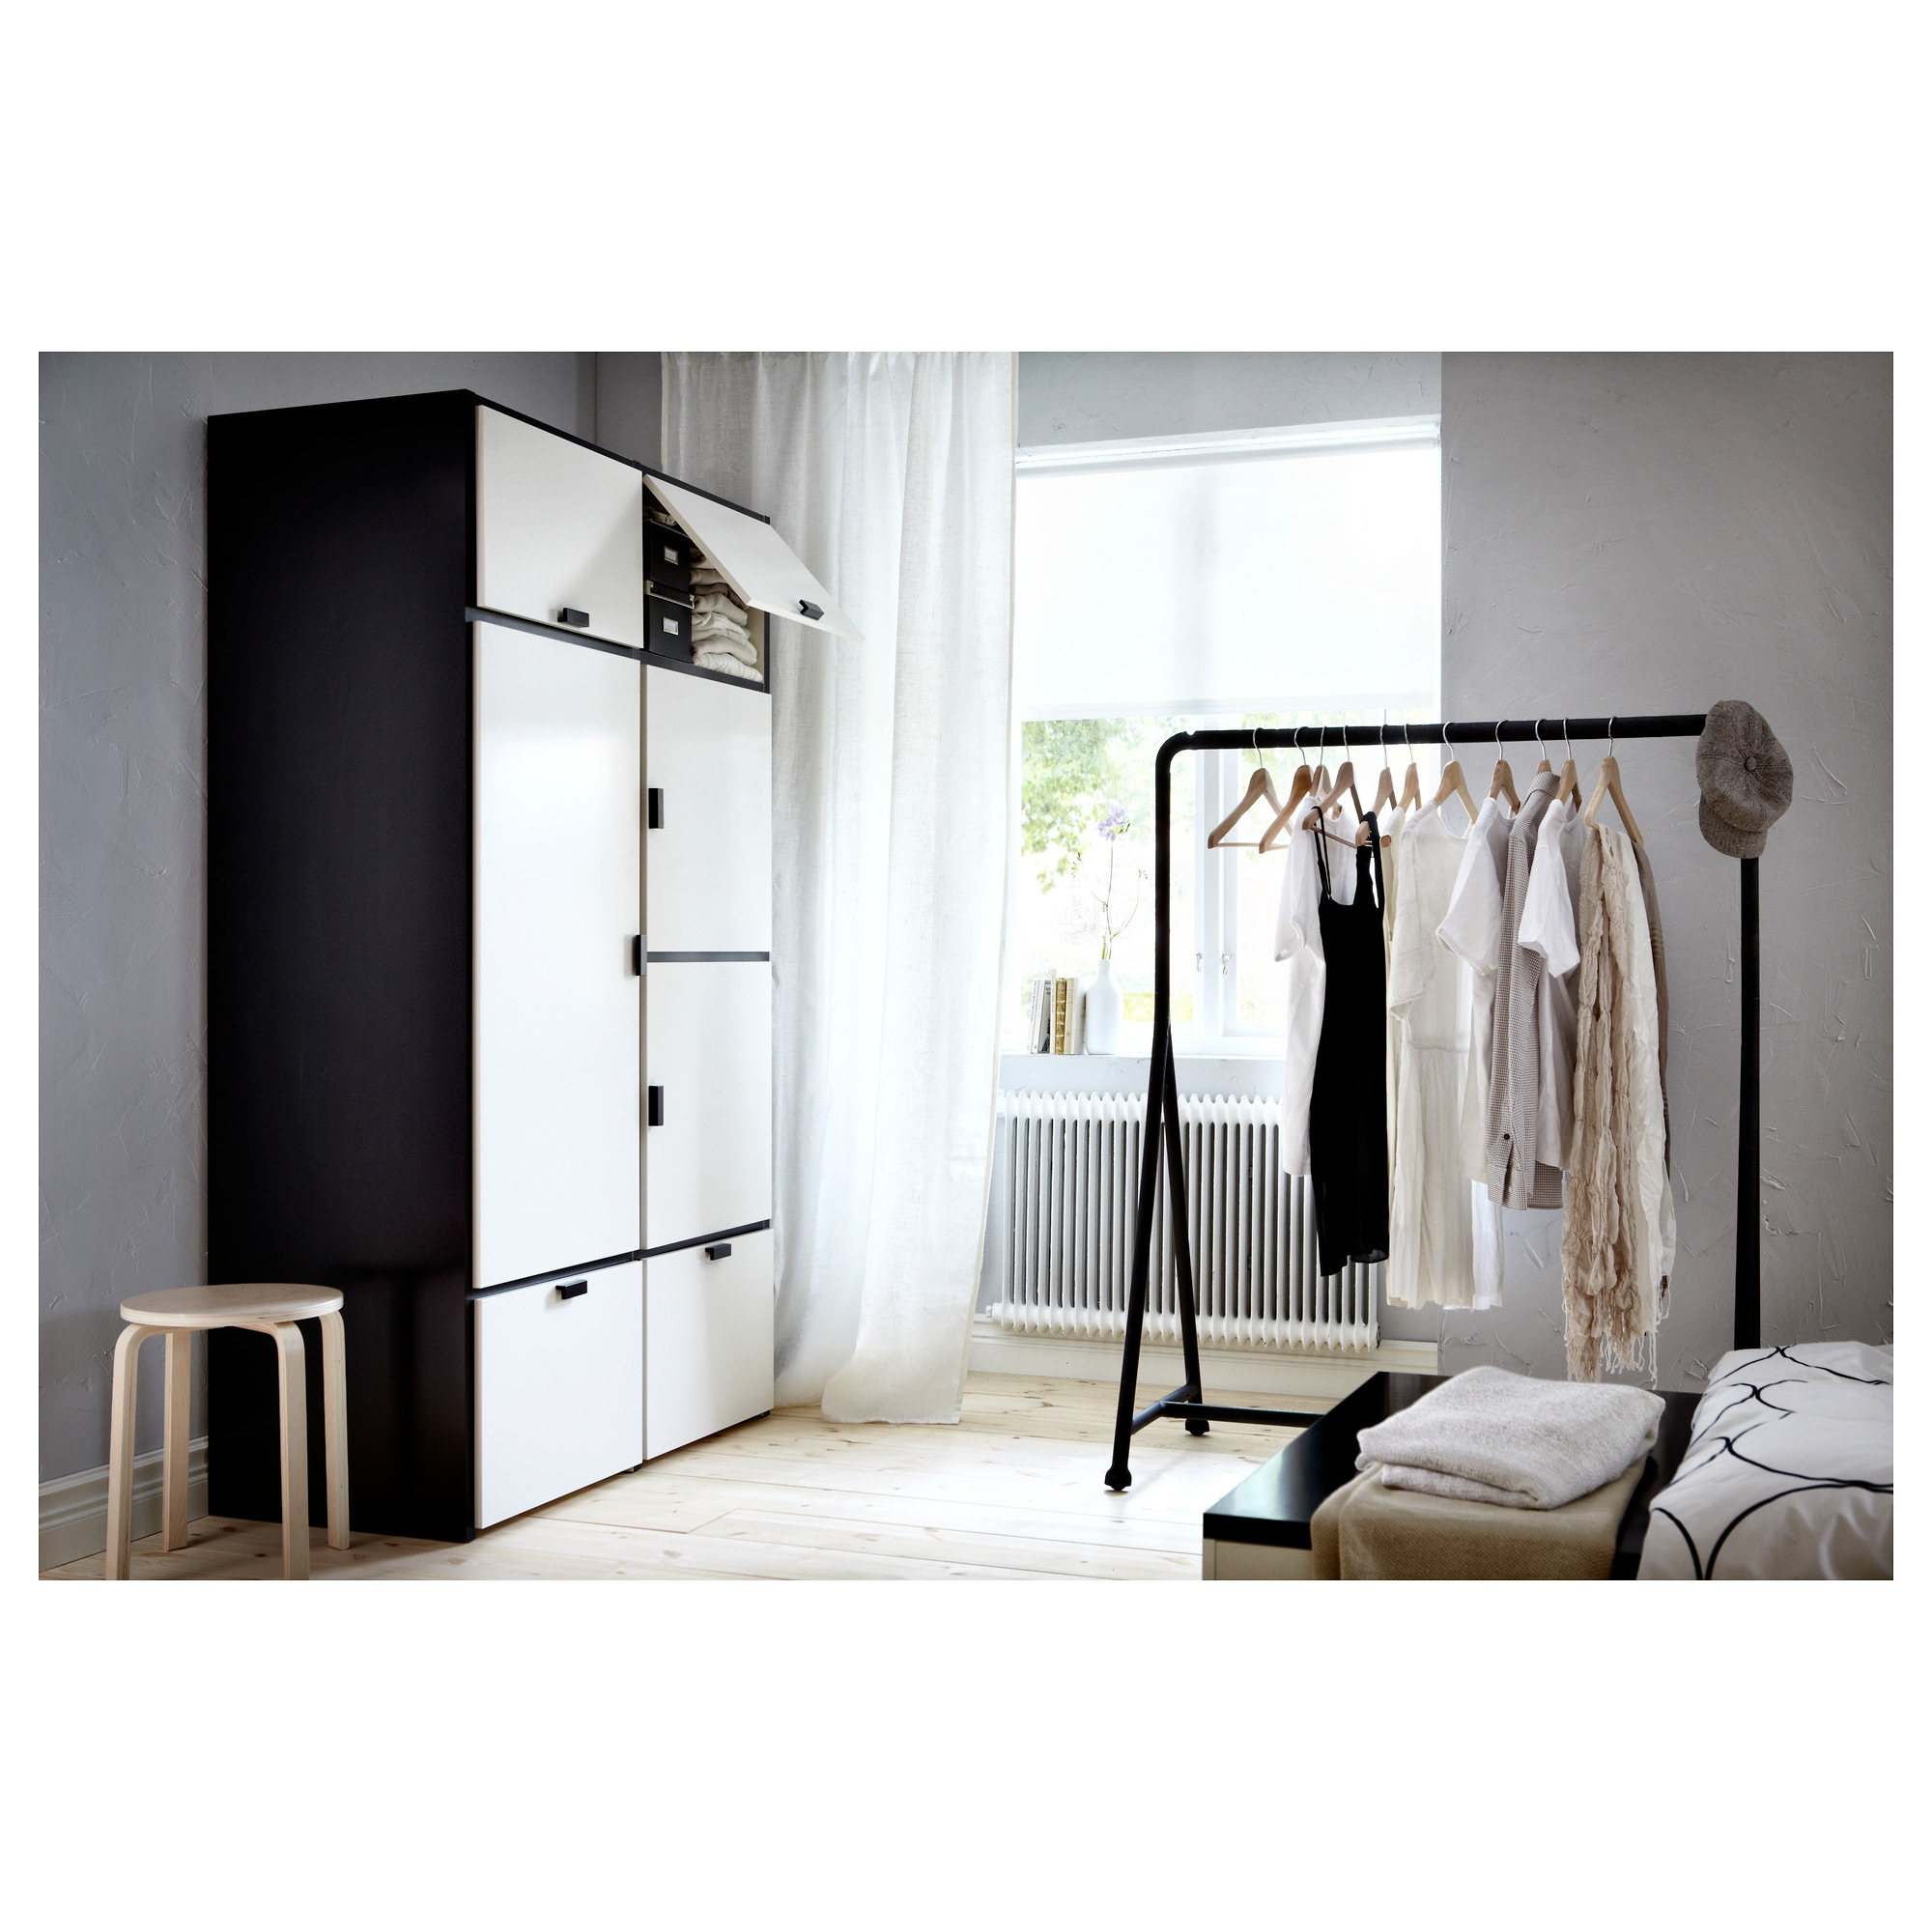 ikea kuhinje planer 20170728090538 zanimljive ideje za dizajn svoj dom prostor. Black Bedroom Furniture Sets. Home Design Ideas